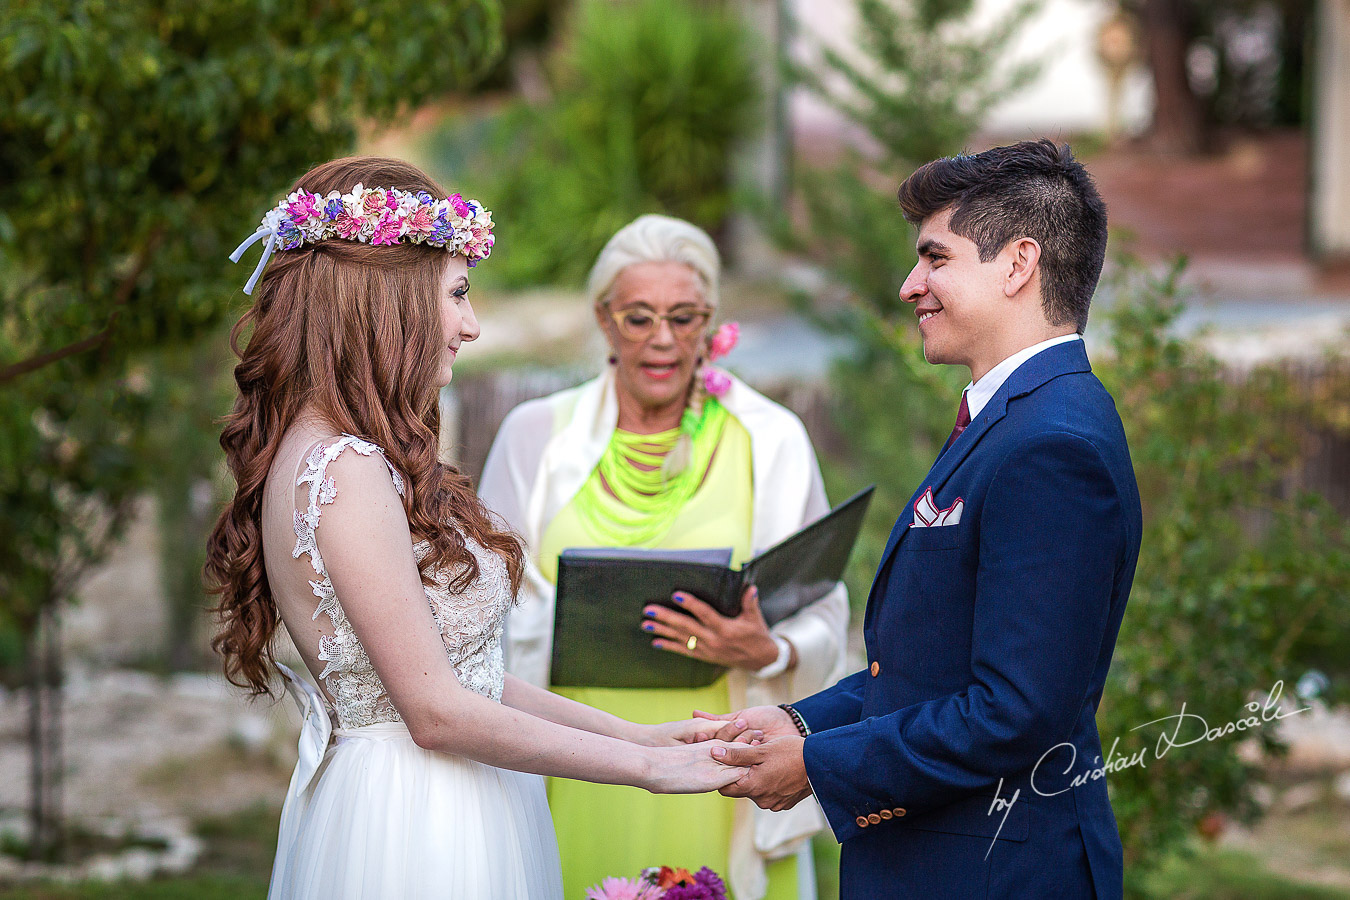 Emotional moments captured at a beautiful bohemian wedding in Trimiklini, Cyprus.